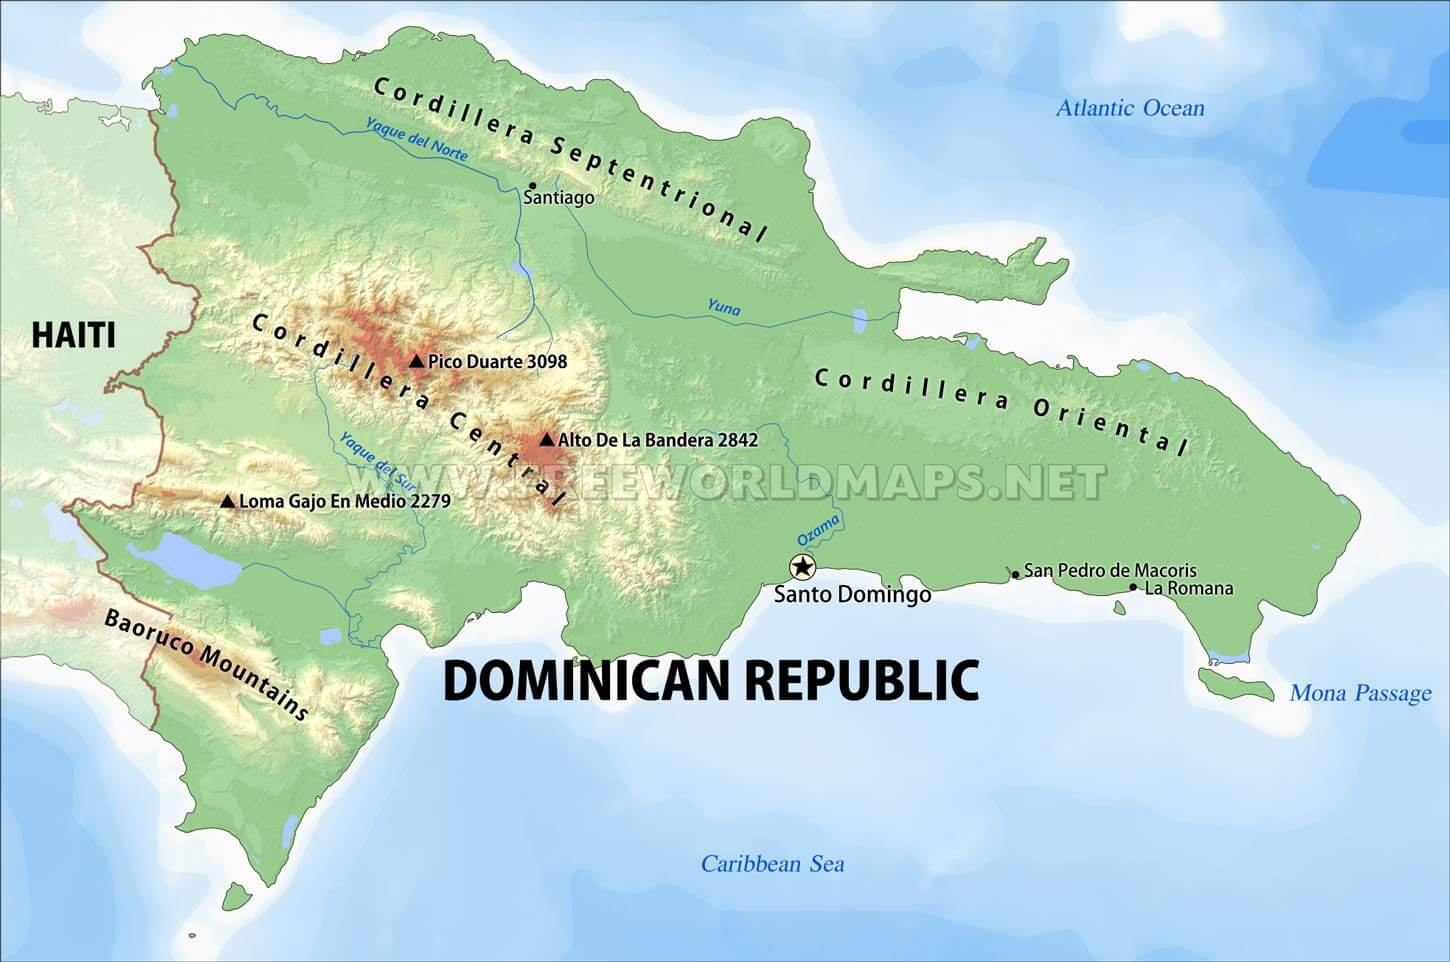 Dominican Republic Physical Map on haiti map, peru map, el salvador, punta cana map, ecuador map, jamaica map, china map, canada map, cuba map, hispaniola map, united states map, mexico map, puerto rico, caribbean map, spain map, panama map, dr map, italy map, belize map, costa rica map, carribean map, costa rica, punta cana, hungary map, santo domingo,